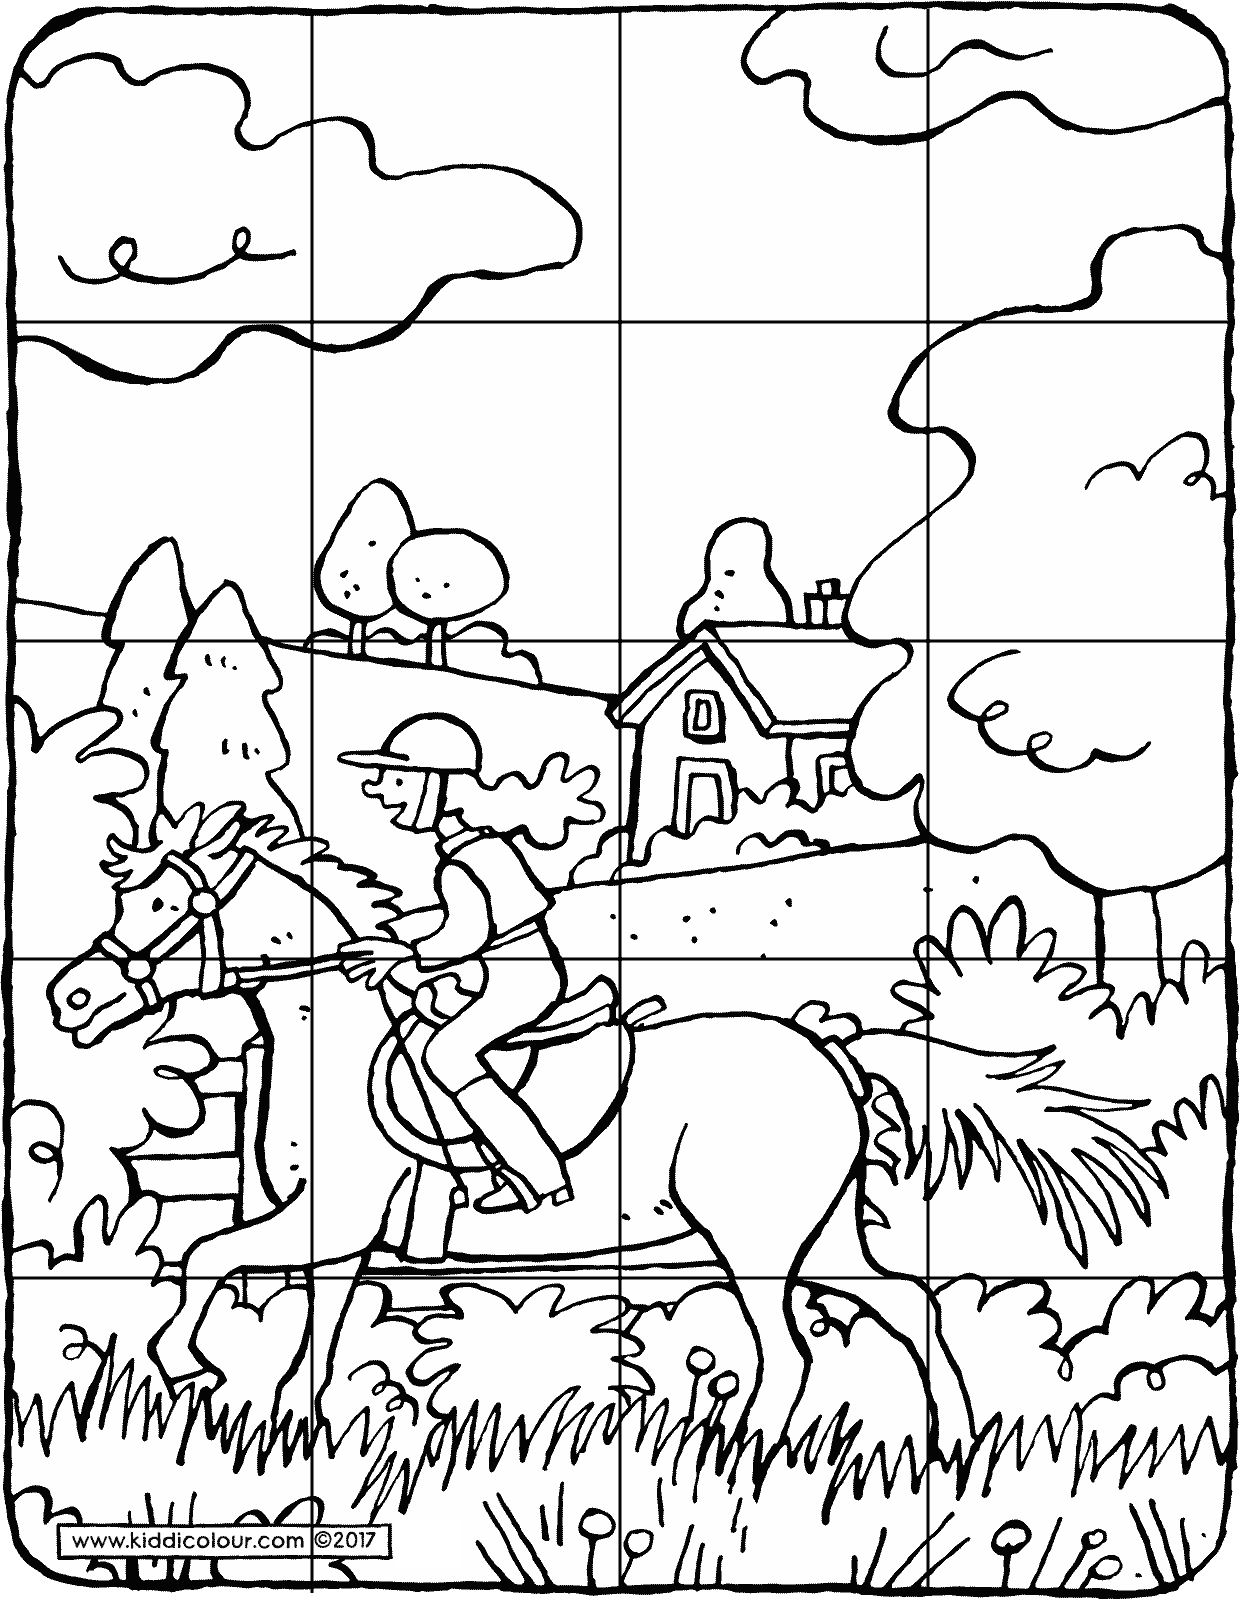 Horse riding puzzle kiddi kleurprentjes - Coloriage puzzle ...